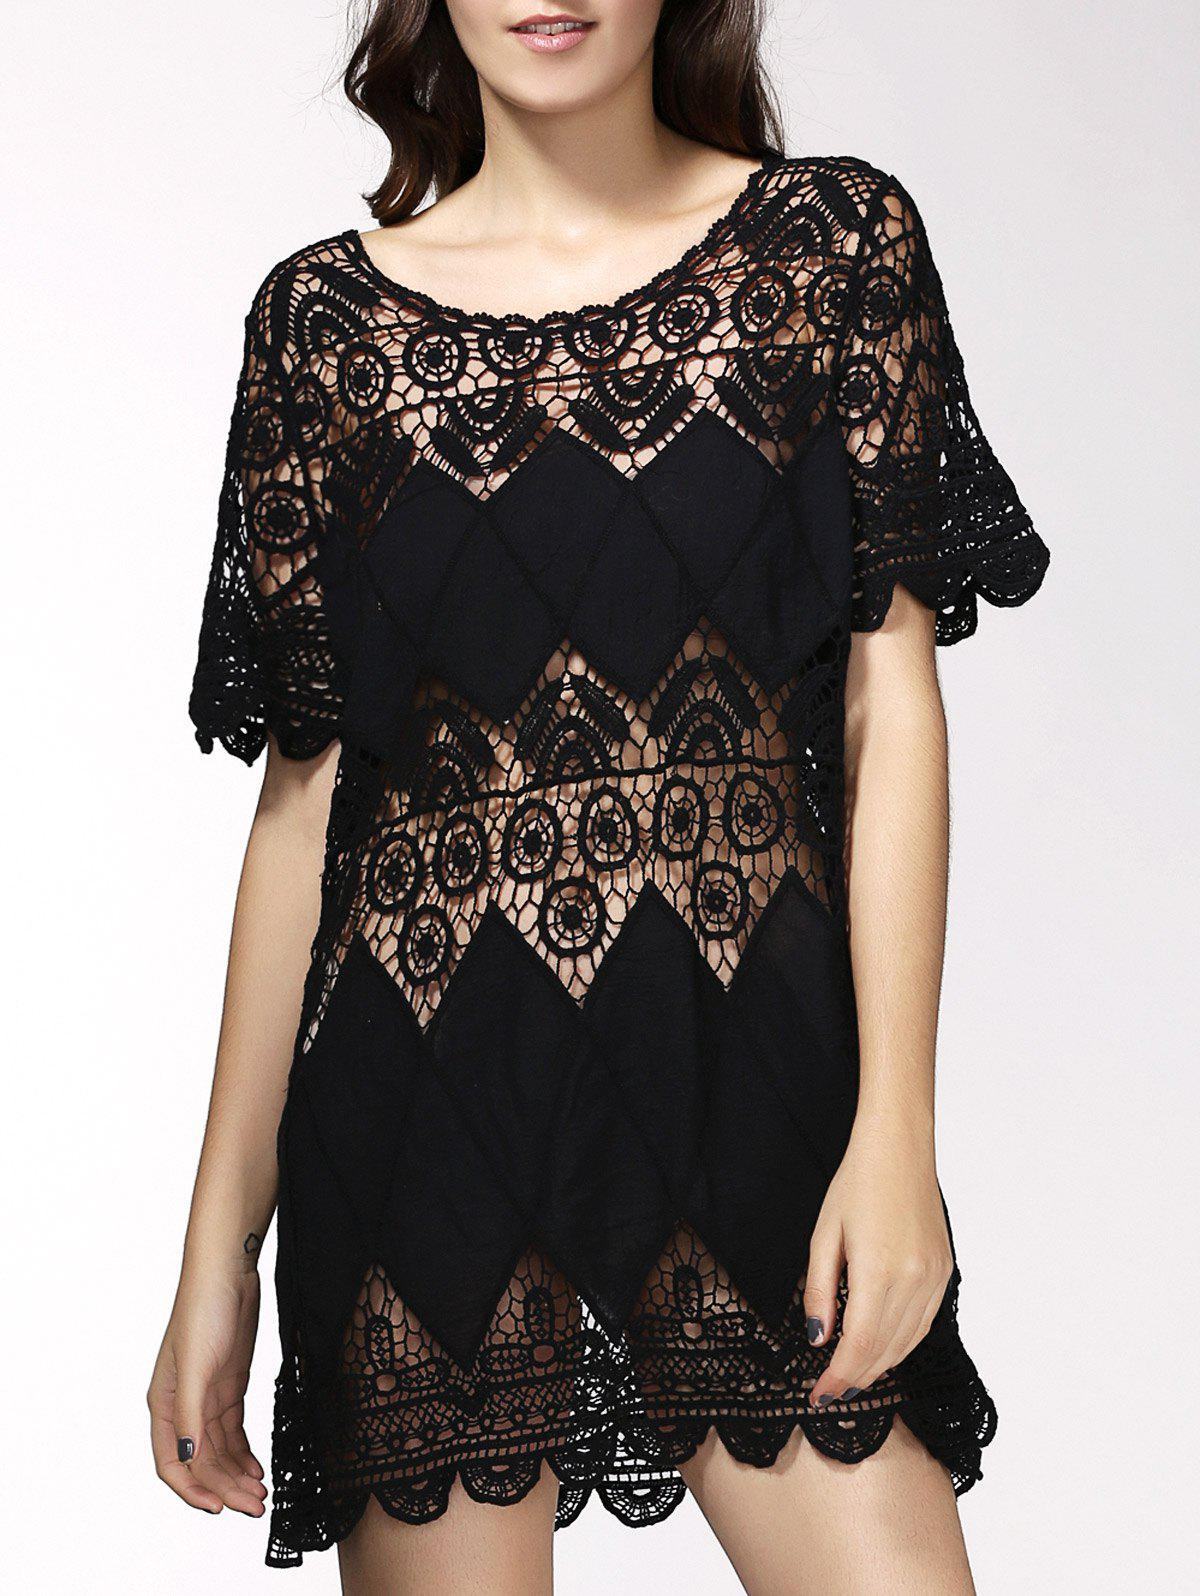 Alluring Hollow Out Short Sleeve Women's Cover Up Dress - BLACK ONE SIZE(FIT SIZE XS TO M)